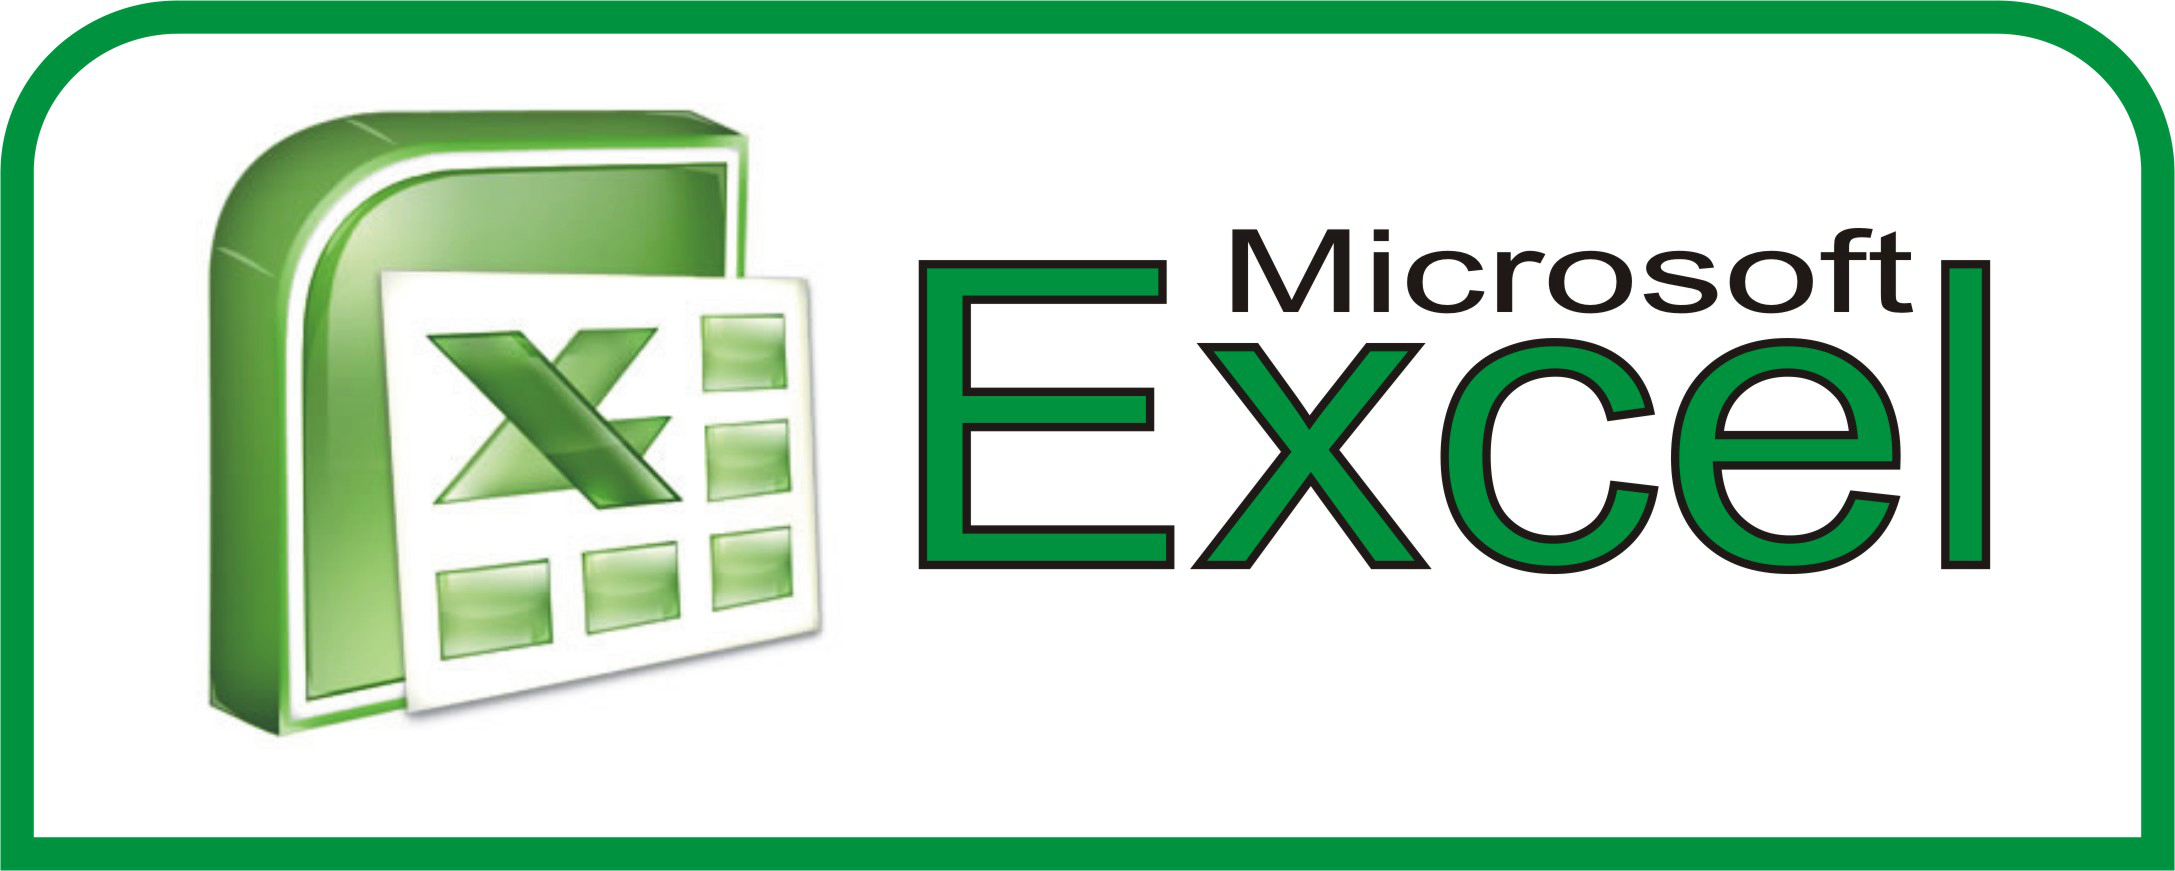 Ediblewildsus  Splendid  Excel Shortcuts You Probably Didnt Know About  Techdissected With Remarkable Excel Print Preview Shortcut Besides Excel Formulas With Examples Furthermore Excel Formulas For Timesheets With Adorable Template For Excel Also Vlookup Function Excel  In Addition Quantile Excel And Find In Excel  As Well As Excel Table Of Contents Template Additionally Excel Sorting By Date From Techdissectedcom With Ediblewildsus  Remarkable  Excel Shortcuts You Probably Didnt Know About  Techdissected With Adorable Excel Print Preview Shortcut Besides Excel Formulas With Examples Furthermore Excel Formulas For Timesheets And Splendid Template For Excel Also Vlookup Function Excel  In Addition Quantile Excel From Techdissectedcom